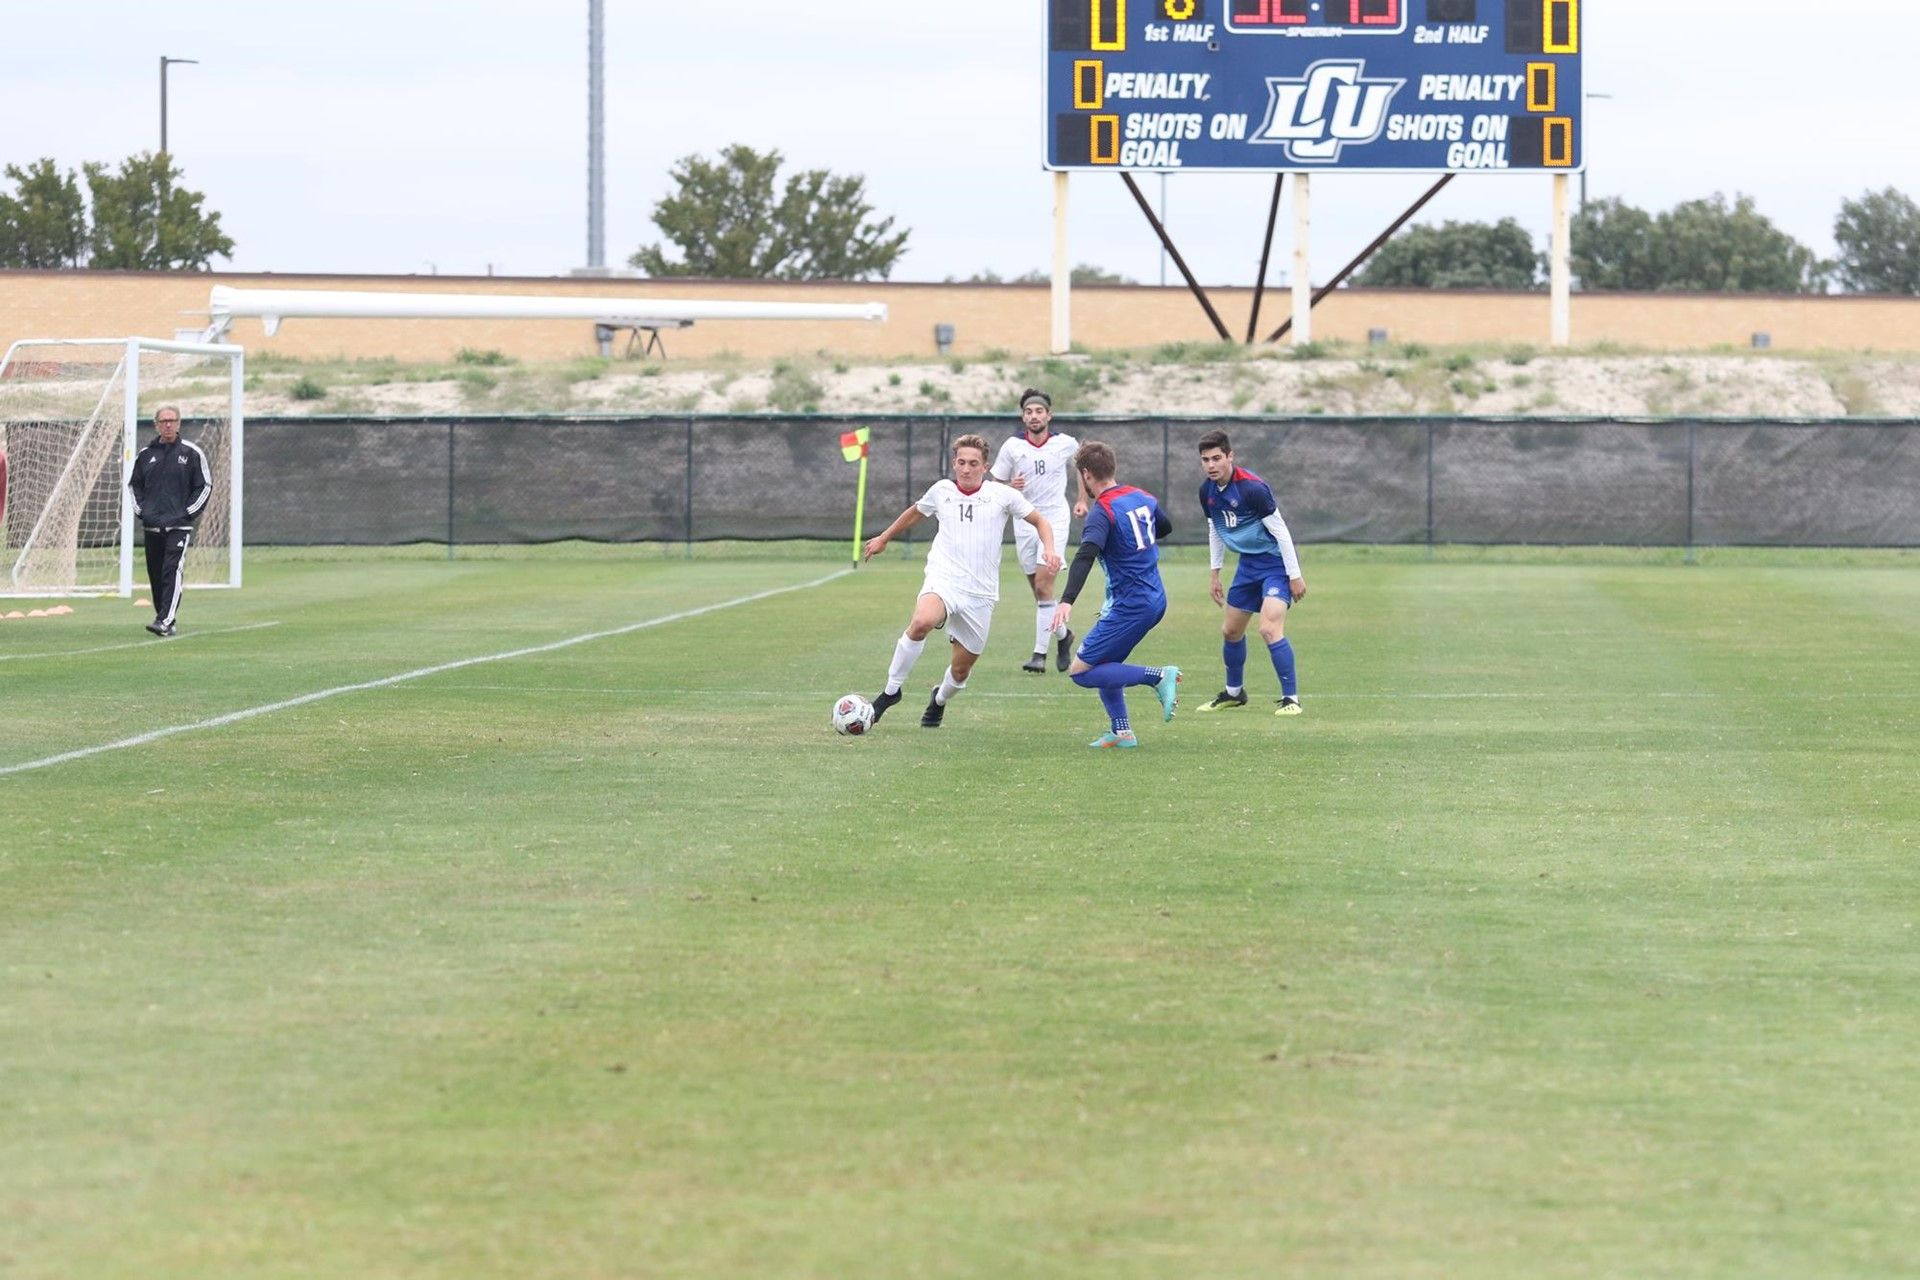 Men's soccer finishes short of qualifying for post-season tournament